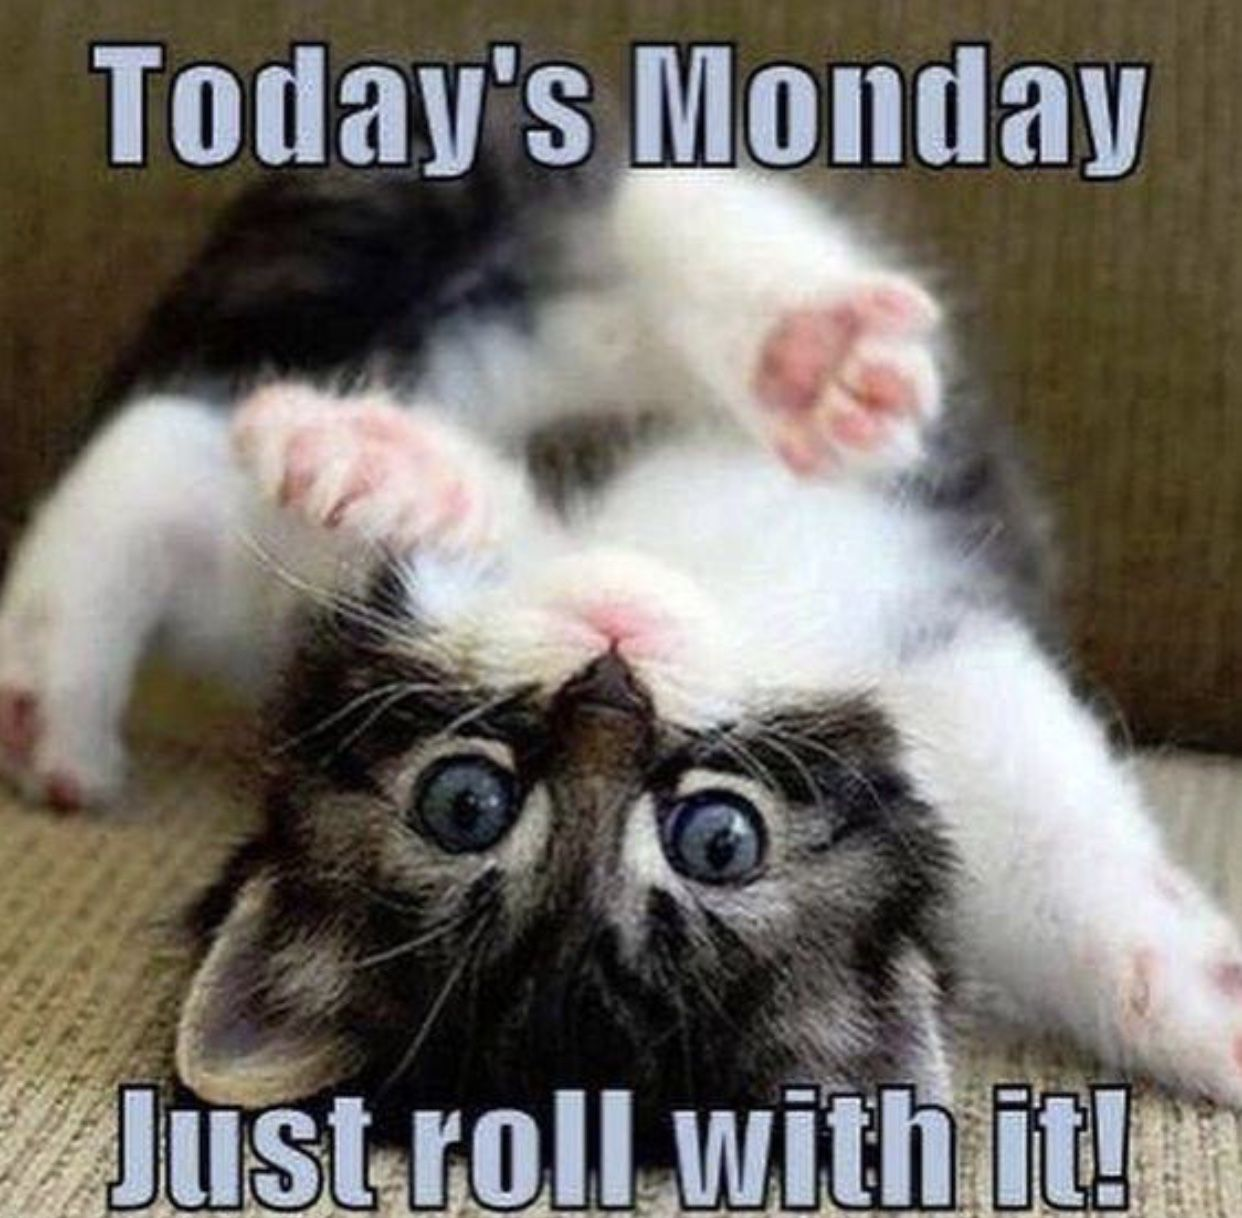 I'll roll with it right back to bed! in 2020 | Good morning funny, Monday  humor, Morning humor